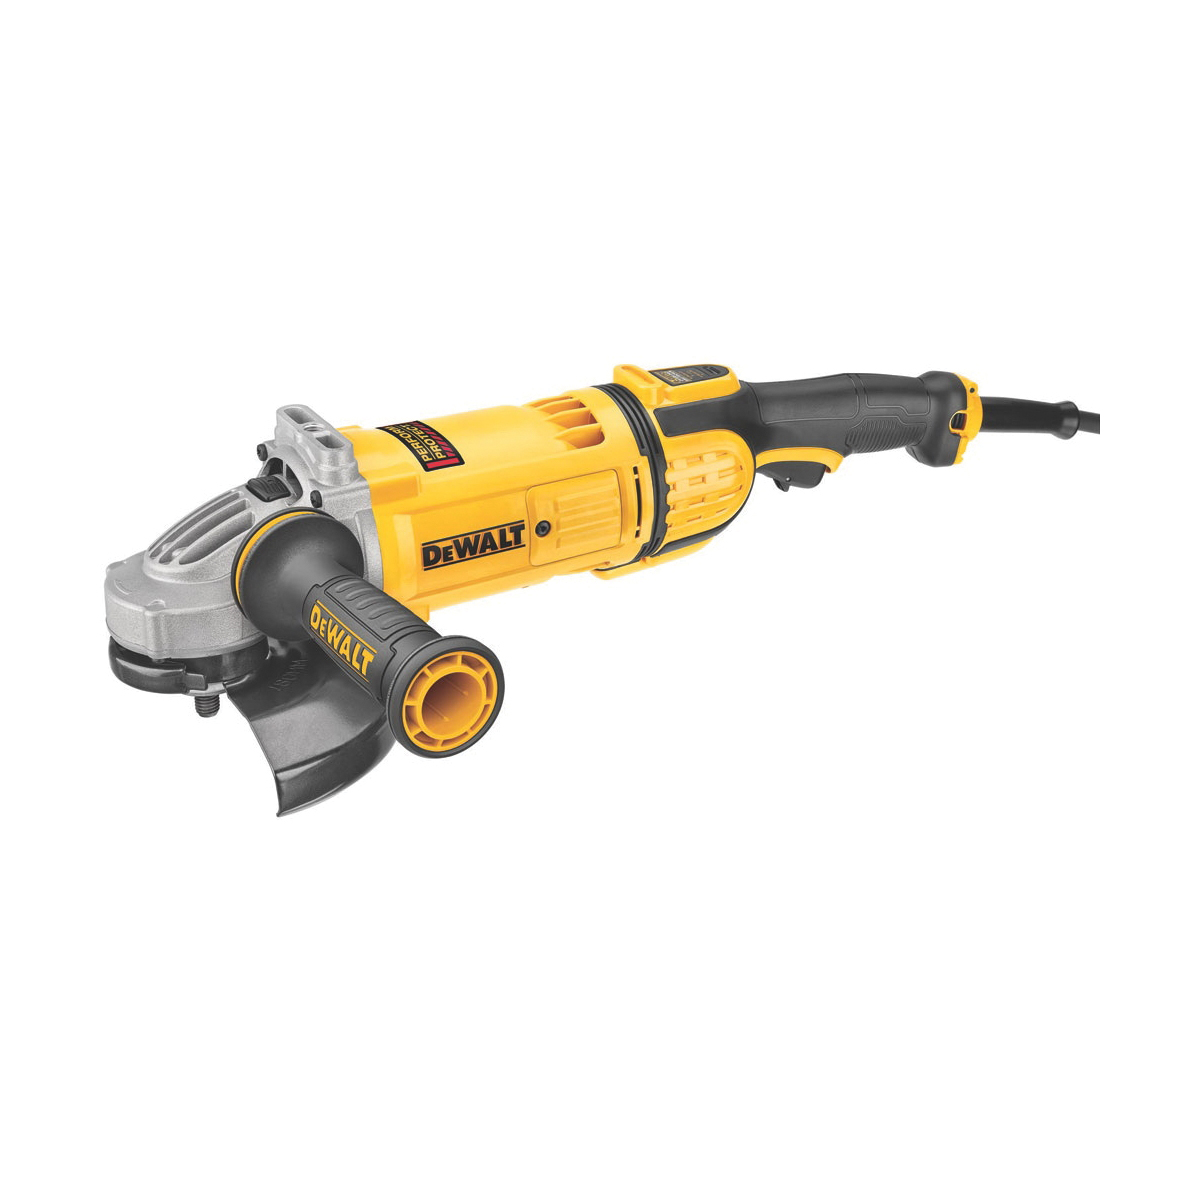 DeWALT® DWE4597N Protect™ Large Angle Grinder, 7 in Dia Wheel, 5/8-11 Arbor/Shank, 120 VAC, Yellow, Yes, Lock-On-Off Trigger Switch